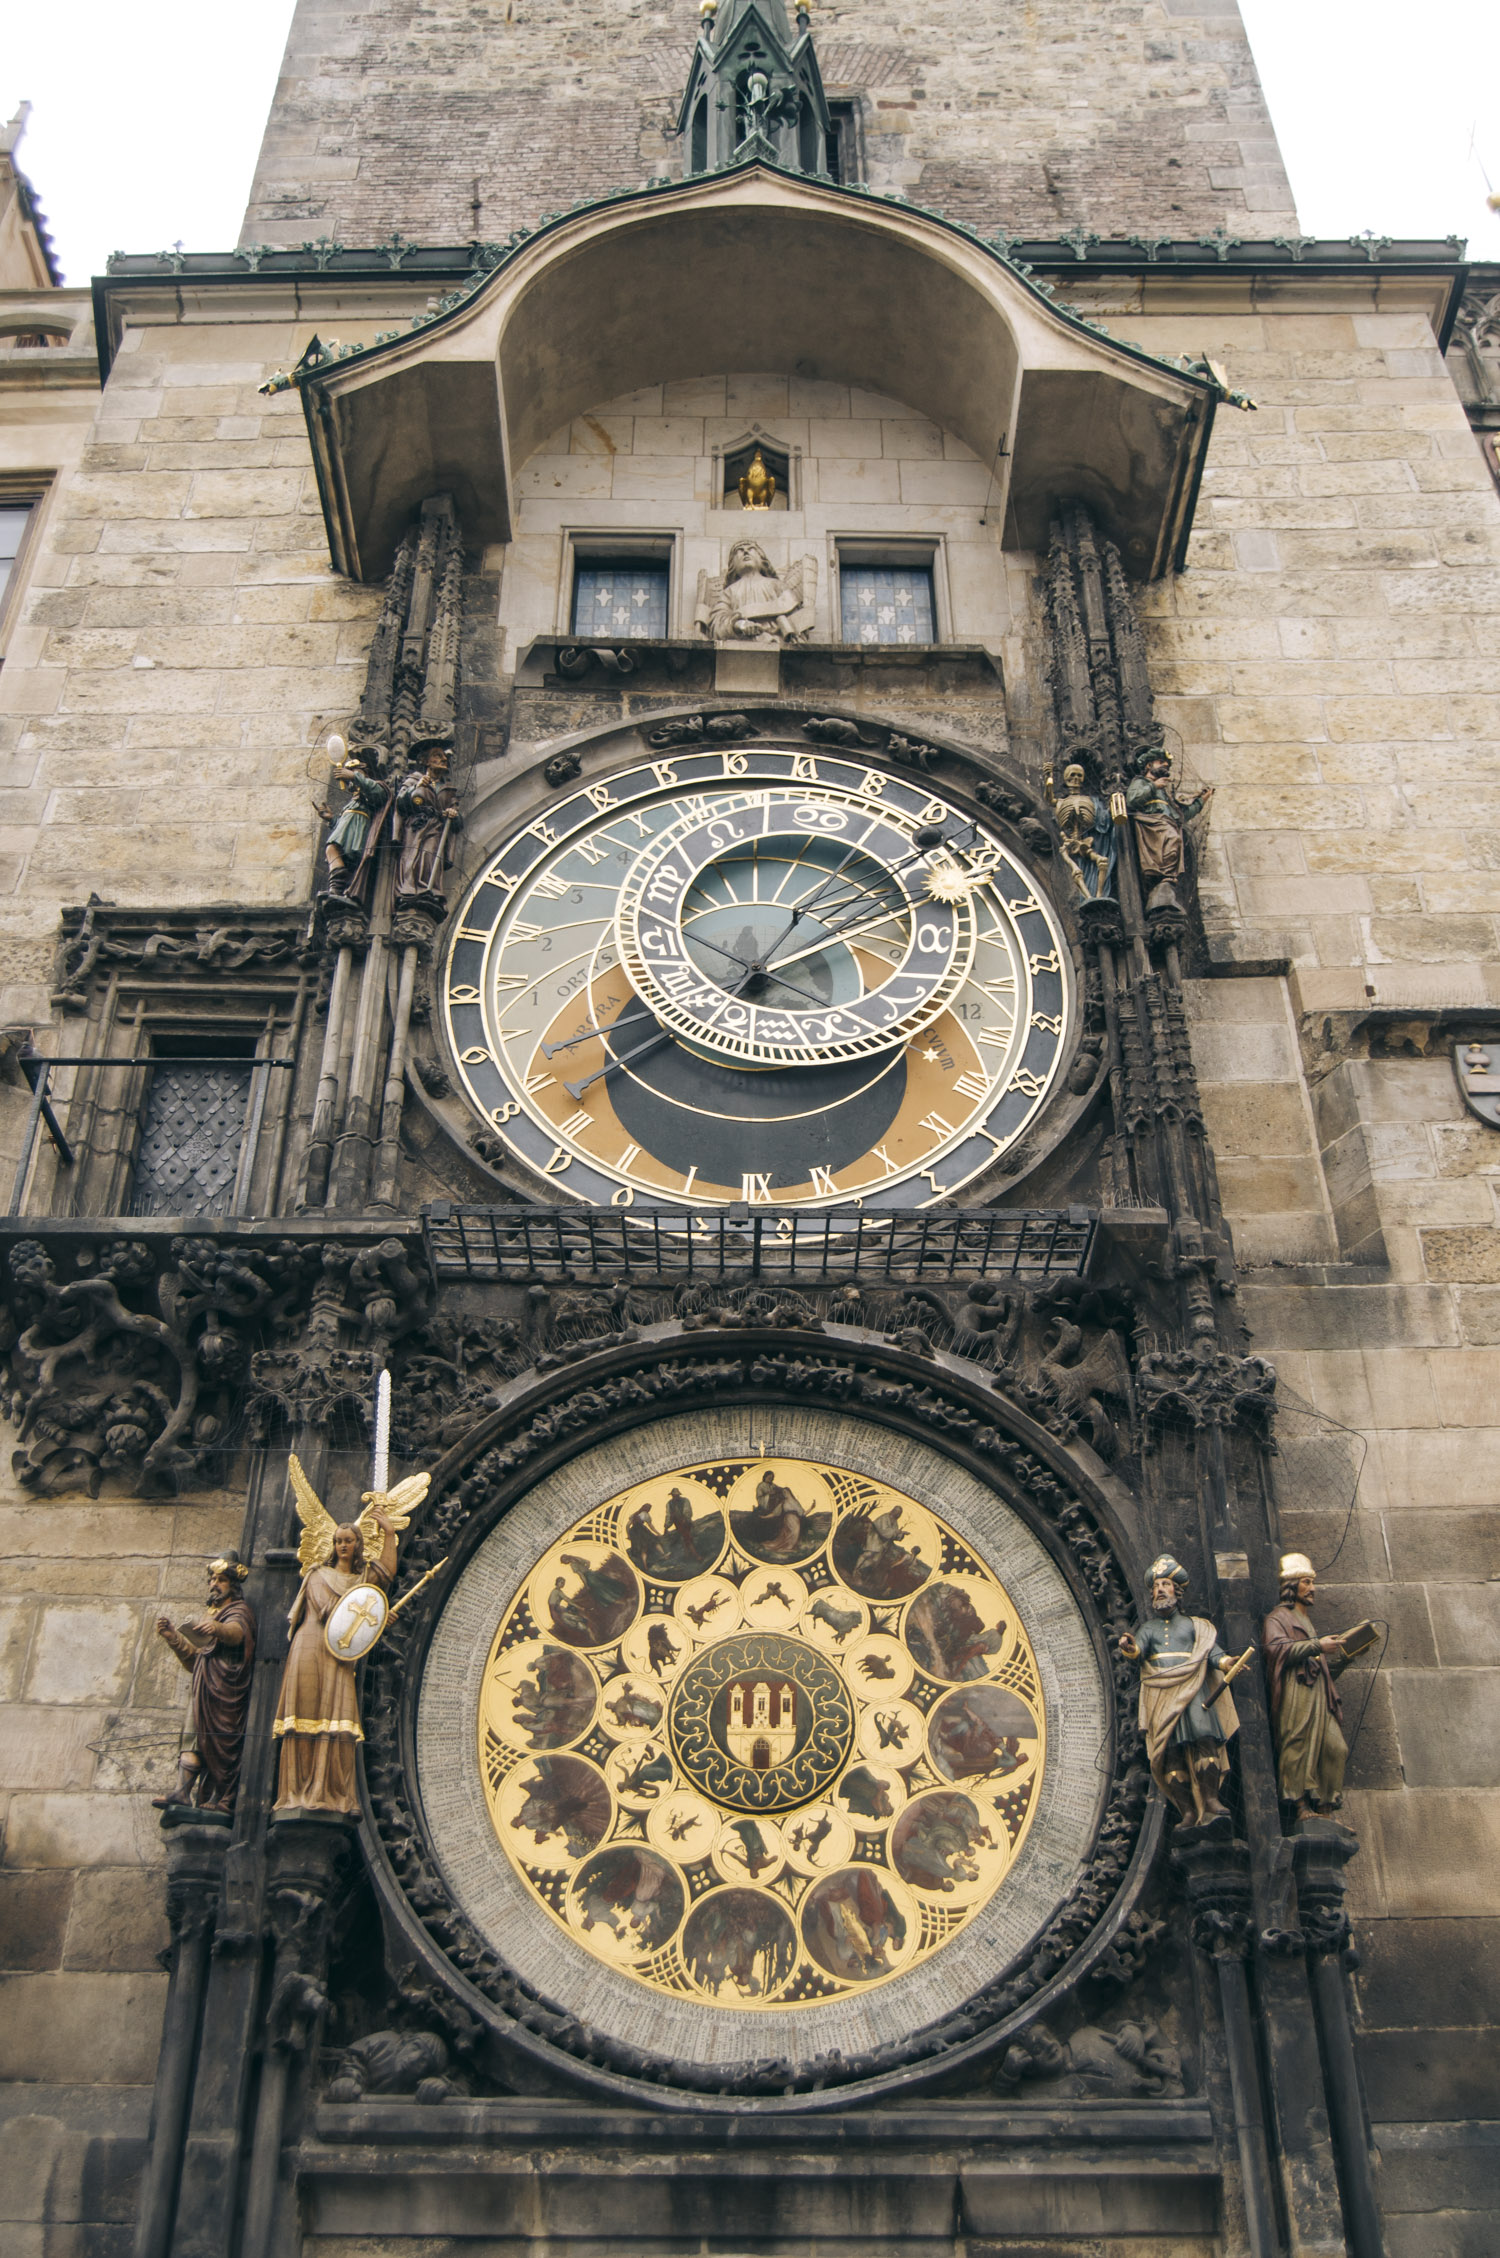 Astronomical Clock - The Old Town Hall was established in 1338 as the seat of the Old Town administration. The oldest part of the complex consists of a beautiful Gothic tower with a bay chapel and a unique astronomical clock – known as the Orloj – where, every hour between 9 am and 11 pm, the twelve apostles appear. The Gothic Revival eastern wing of the Town Hall was destroyed during the Prague Uprising on May 8, 1945 and was never rebuilt. The guided tour includes the historical halls, the tower and the underground areas.